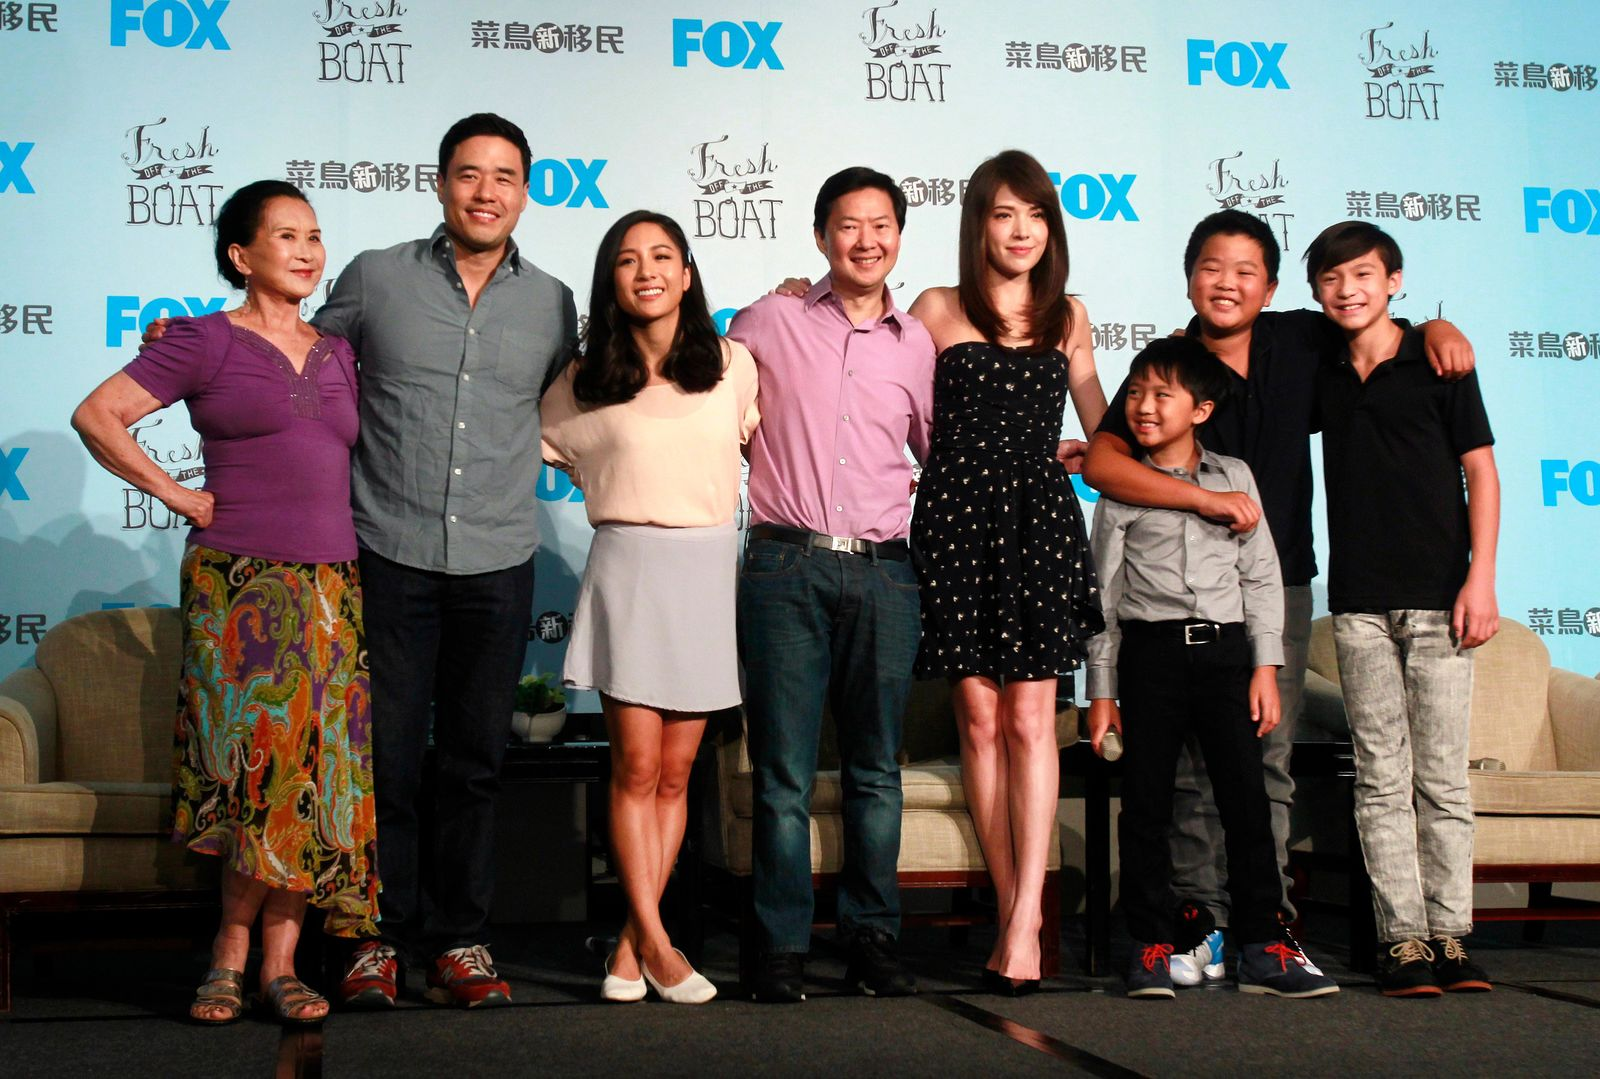 "FILE - In this Friday, Aug. 5, 2016 file photo, actors, from left, Lucille Soong, Randall Park, Constance Wu, Ken Jeong, Ann Hsu, Ian Chen, Hudson Yang and Forrest Wheeler pose for photographers during a media event promoting their television comedy series ""Fresh off the Boat"" in Taipei, Taiwan. (AP Photo/Chiang Ying-ying)"